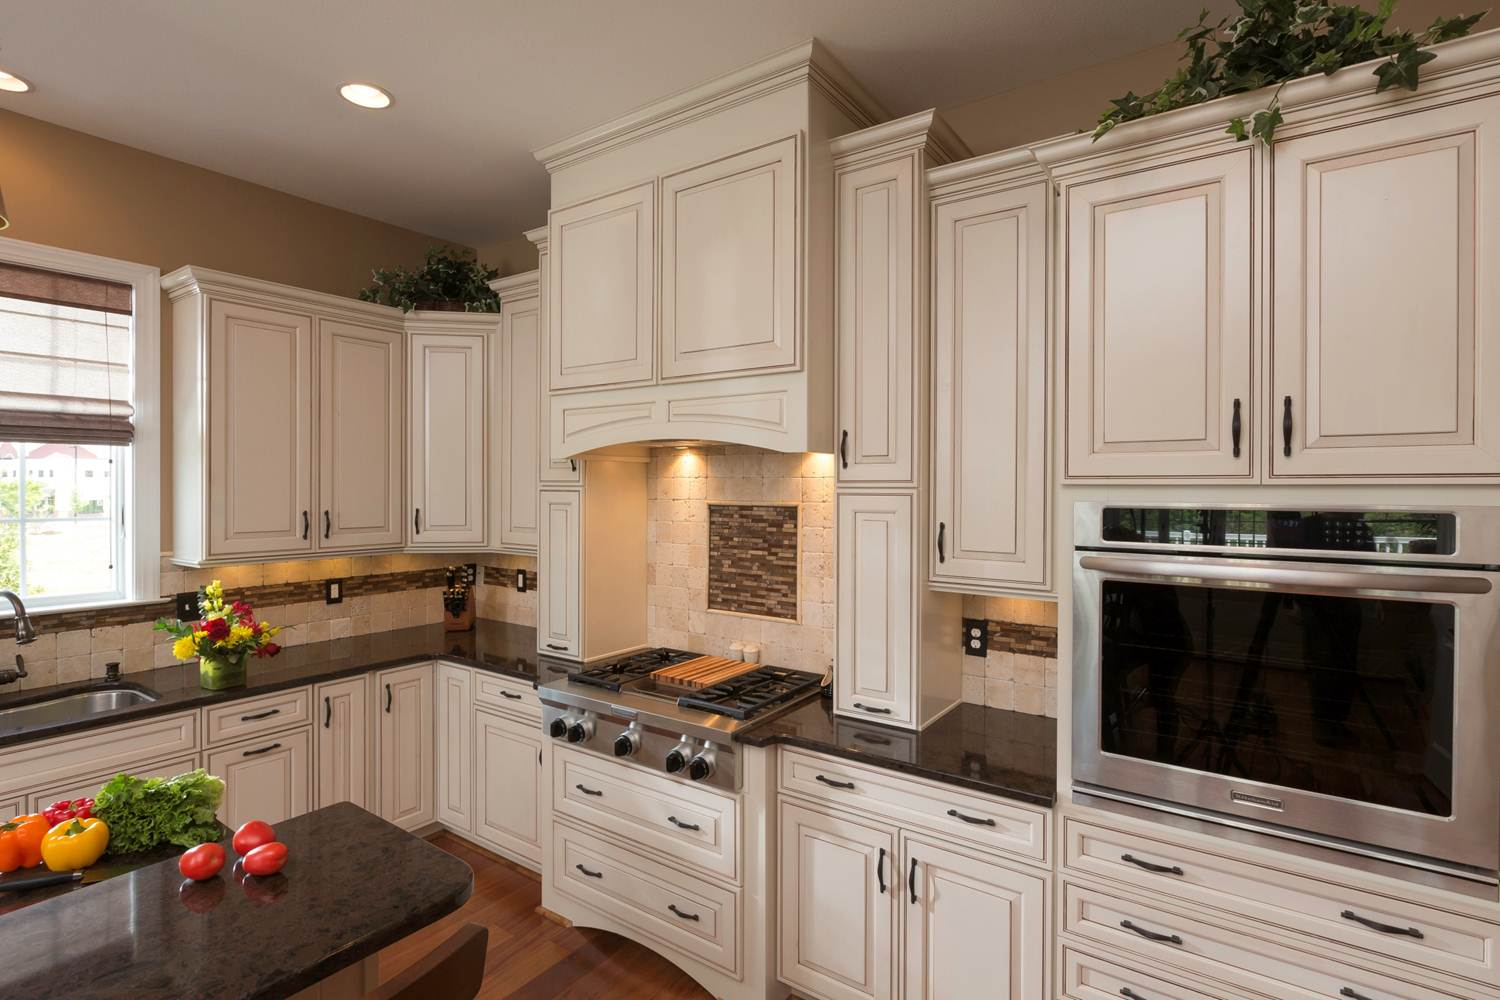 Reico Kitchen Bath Receives Third Consecutive Customer Service Best Of Houzz Award And First